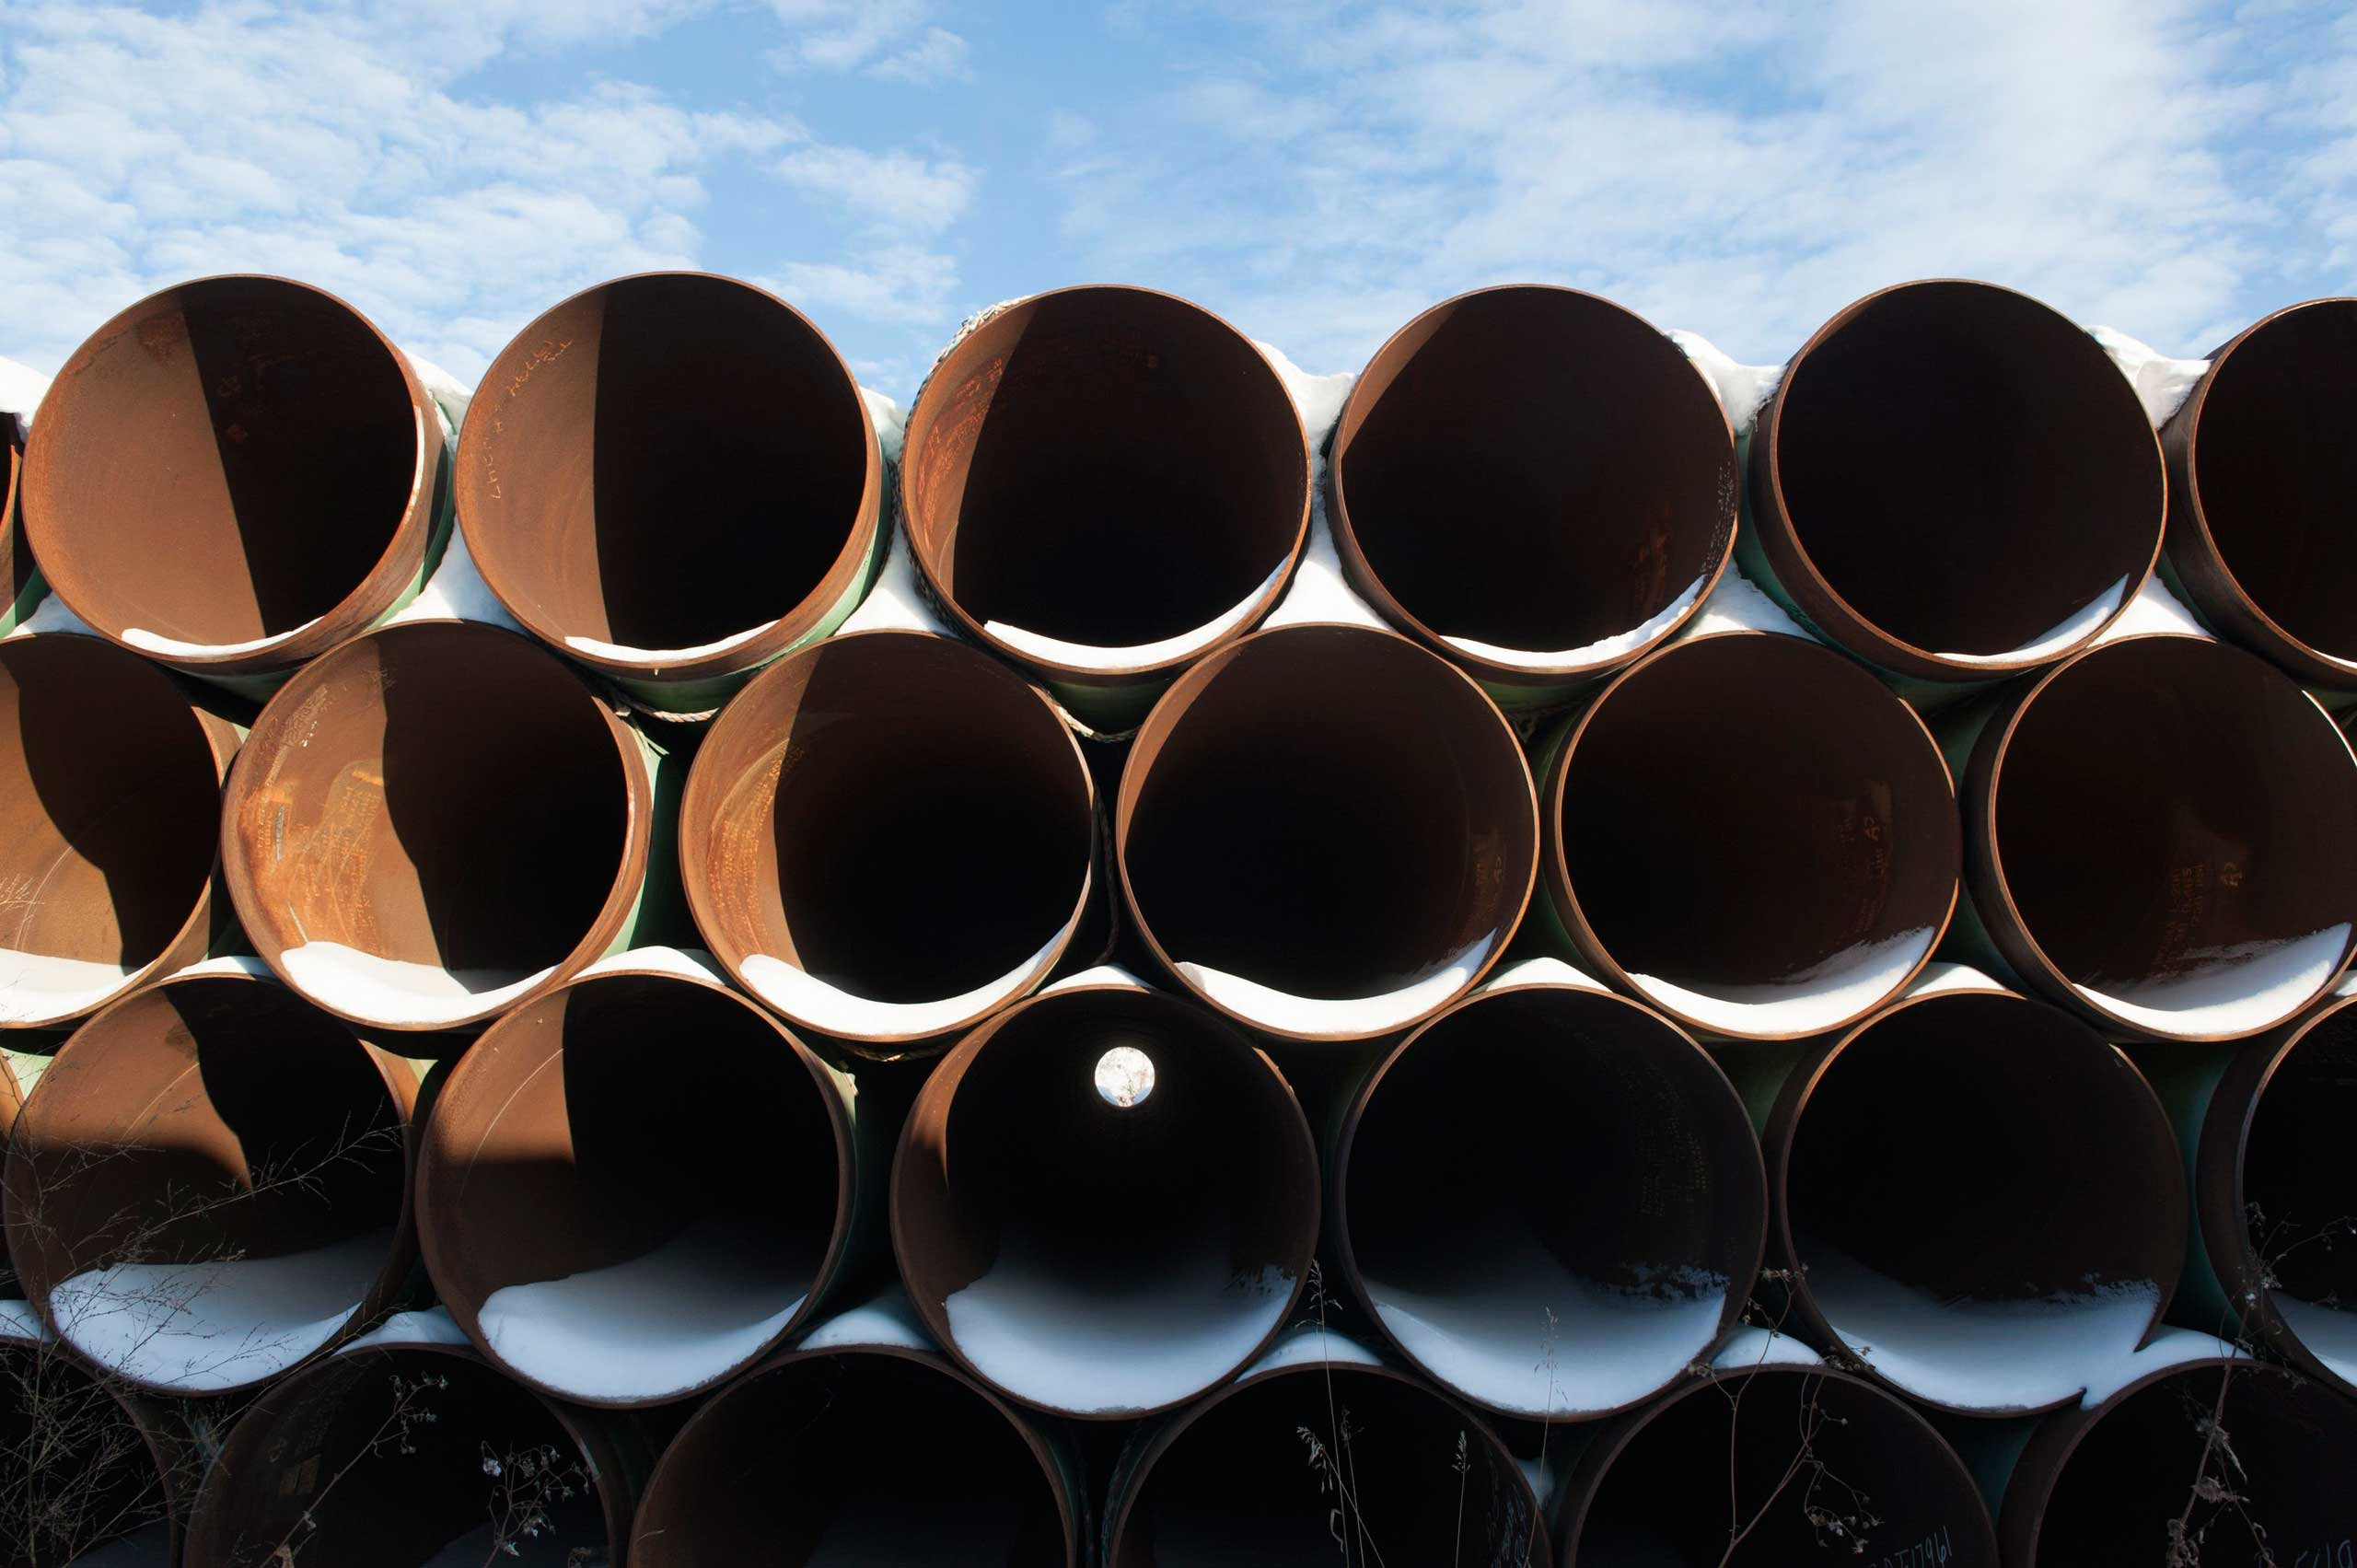 A depot used to store pipes for Transcanada Corp's planned Keystone XL oil pipeline is seen in Gascoyne, N.D. on Nov. 14, 2014.